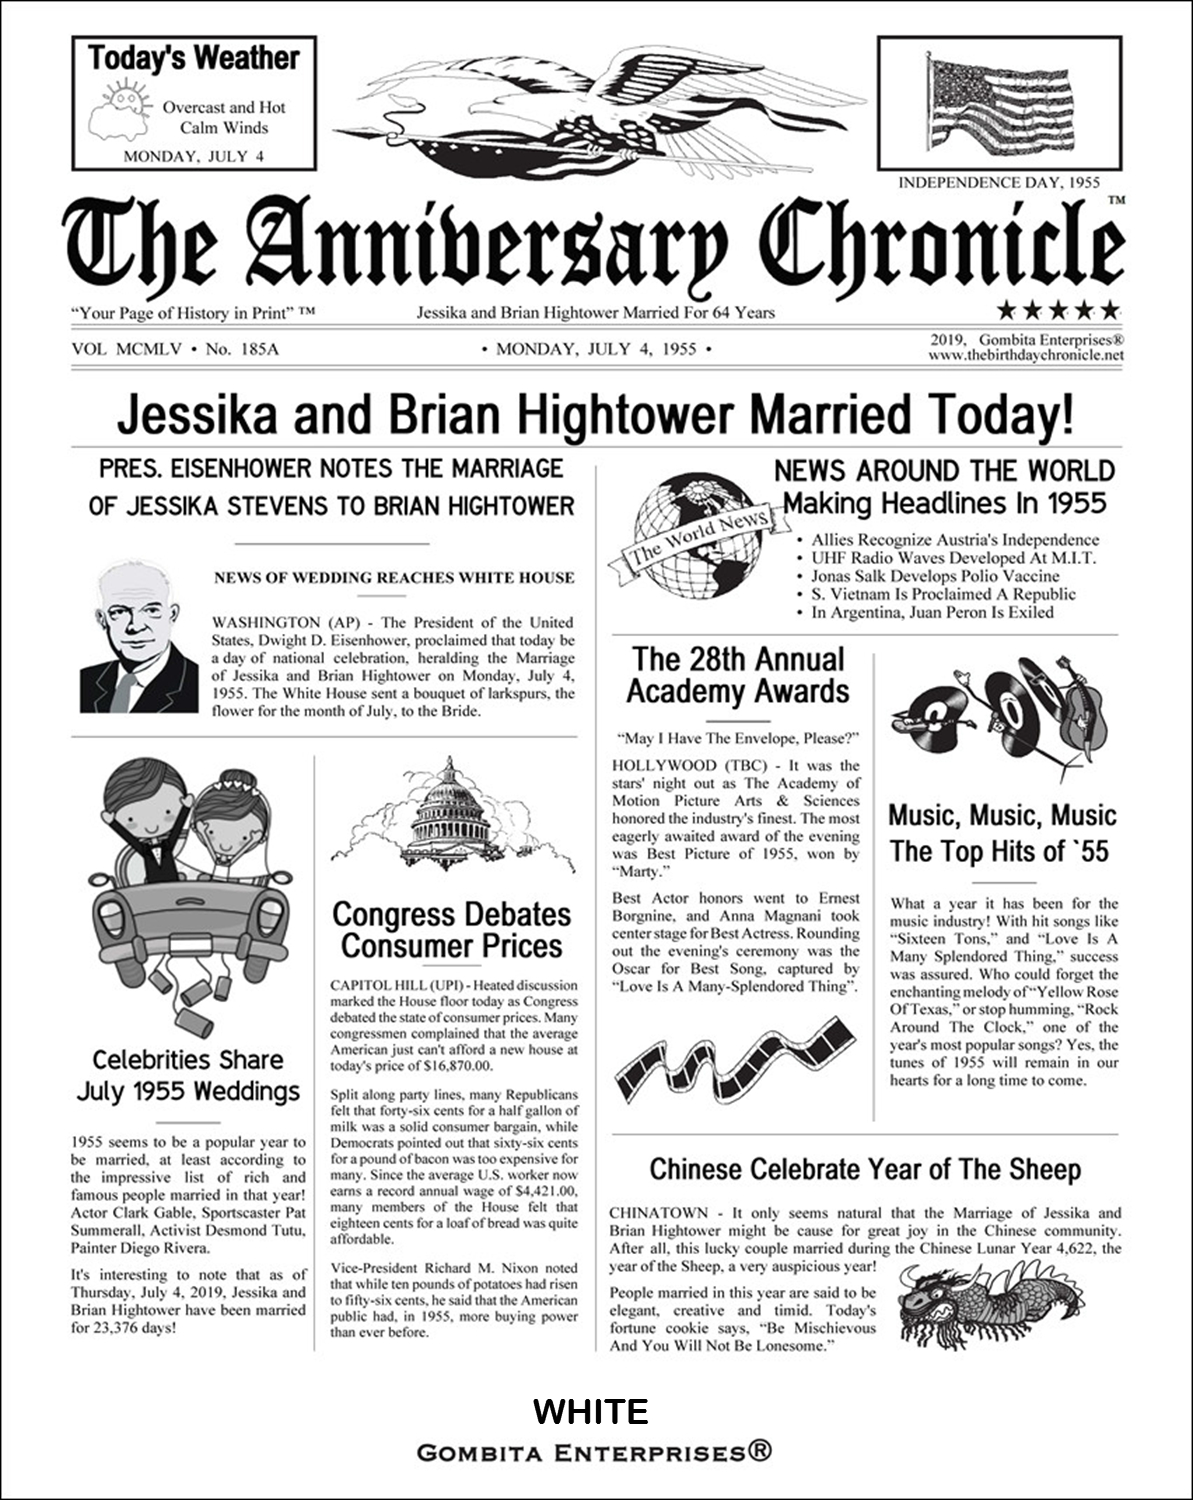 11 x 14 Inch By Mail - The Anniversary Chronicle